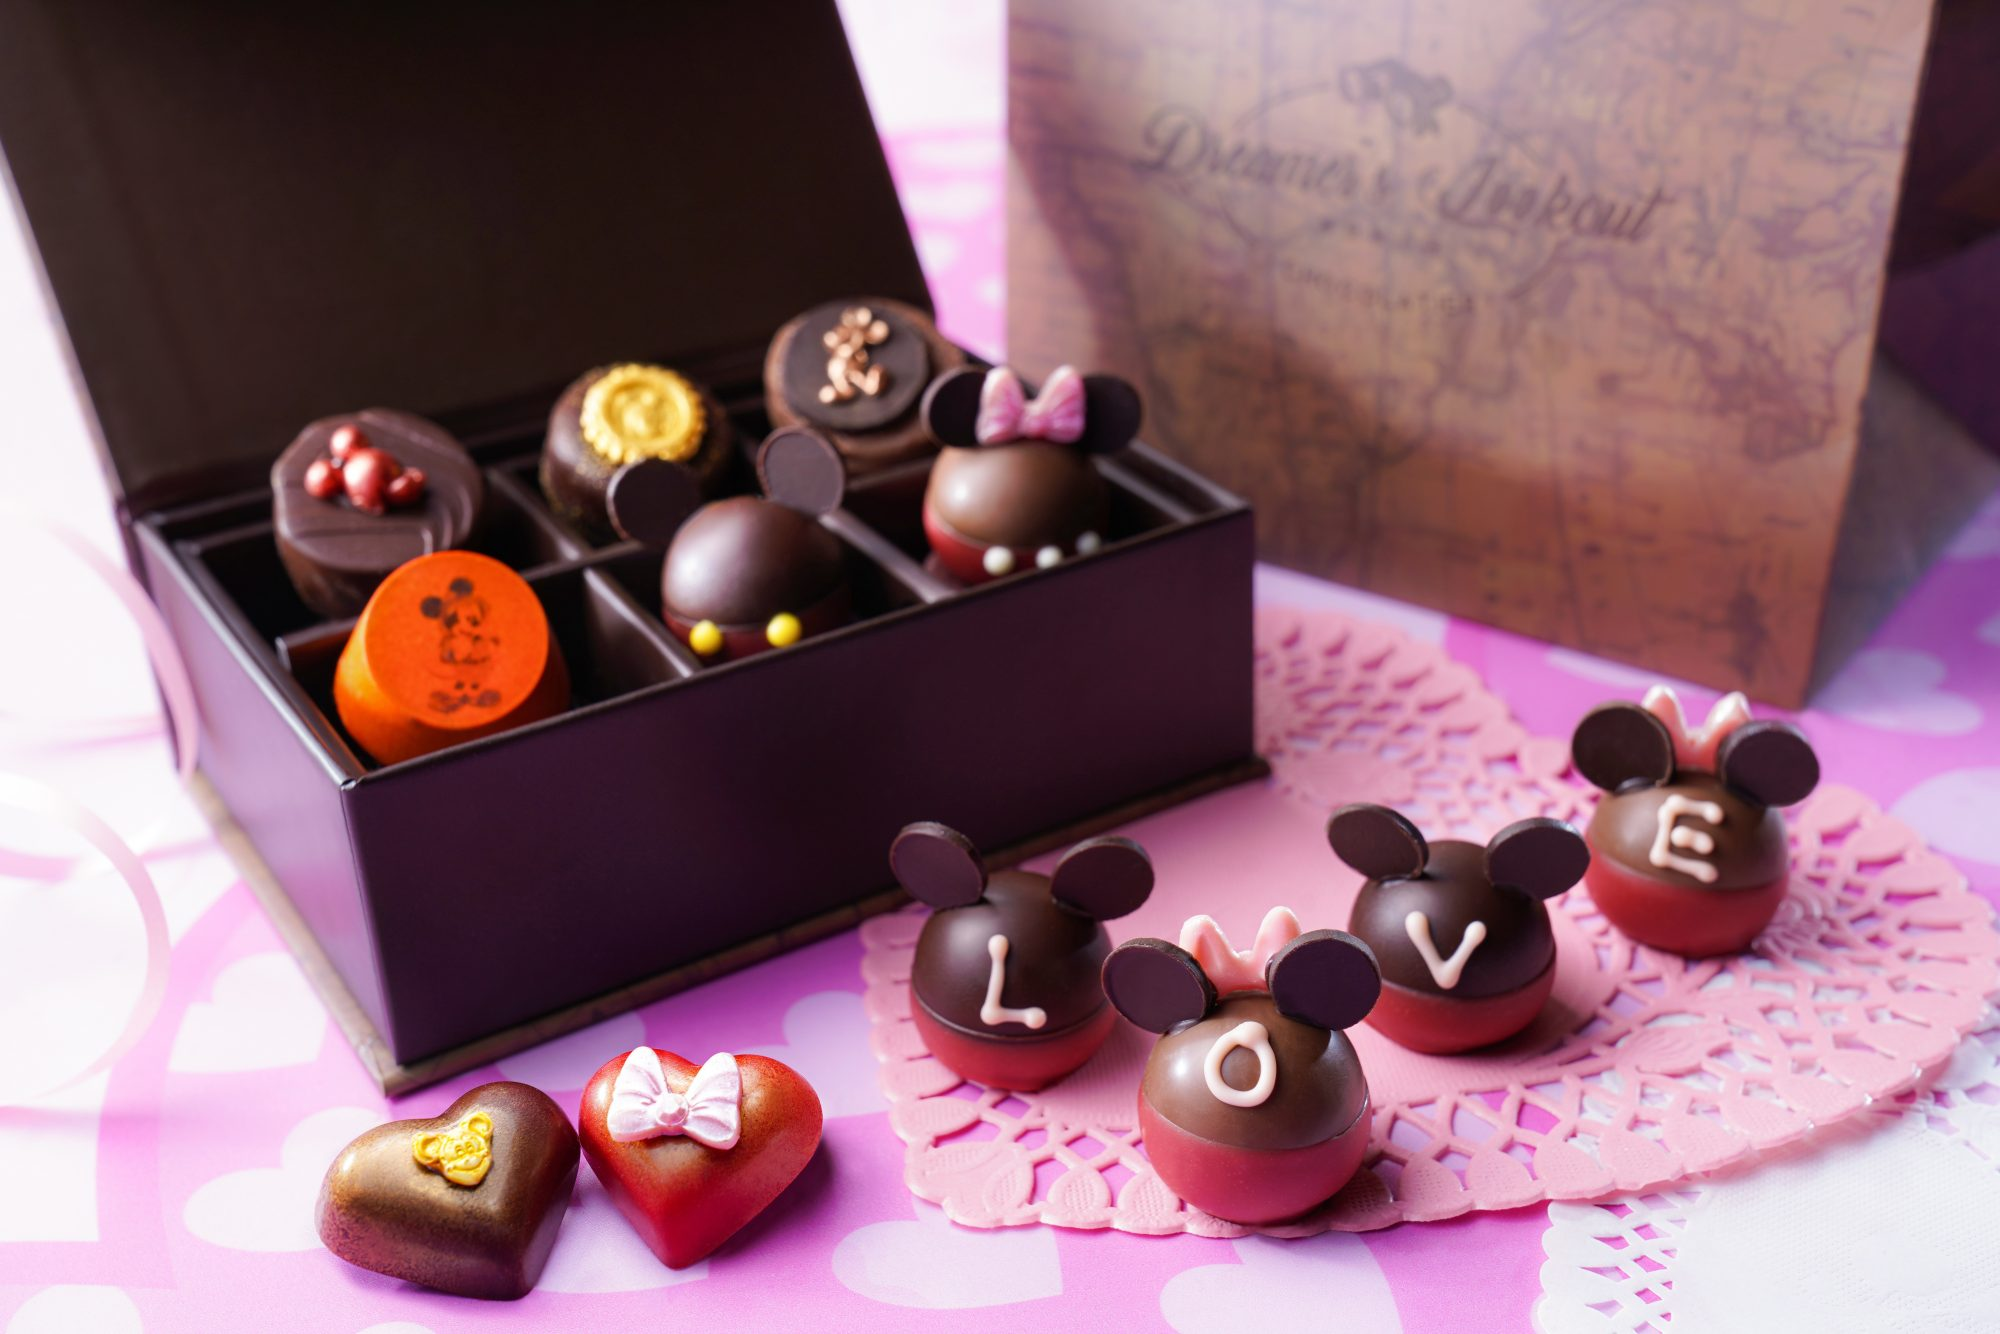 Disney-themed box of chocolates decorated with Mickey Mouse ears, bows, and molded frosting figures